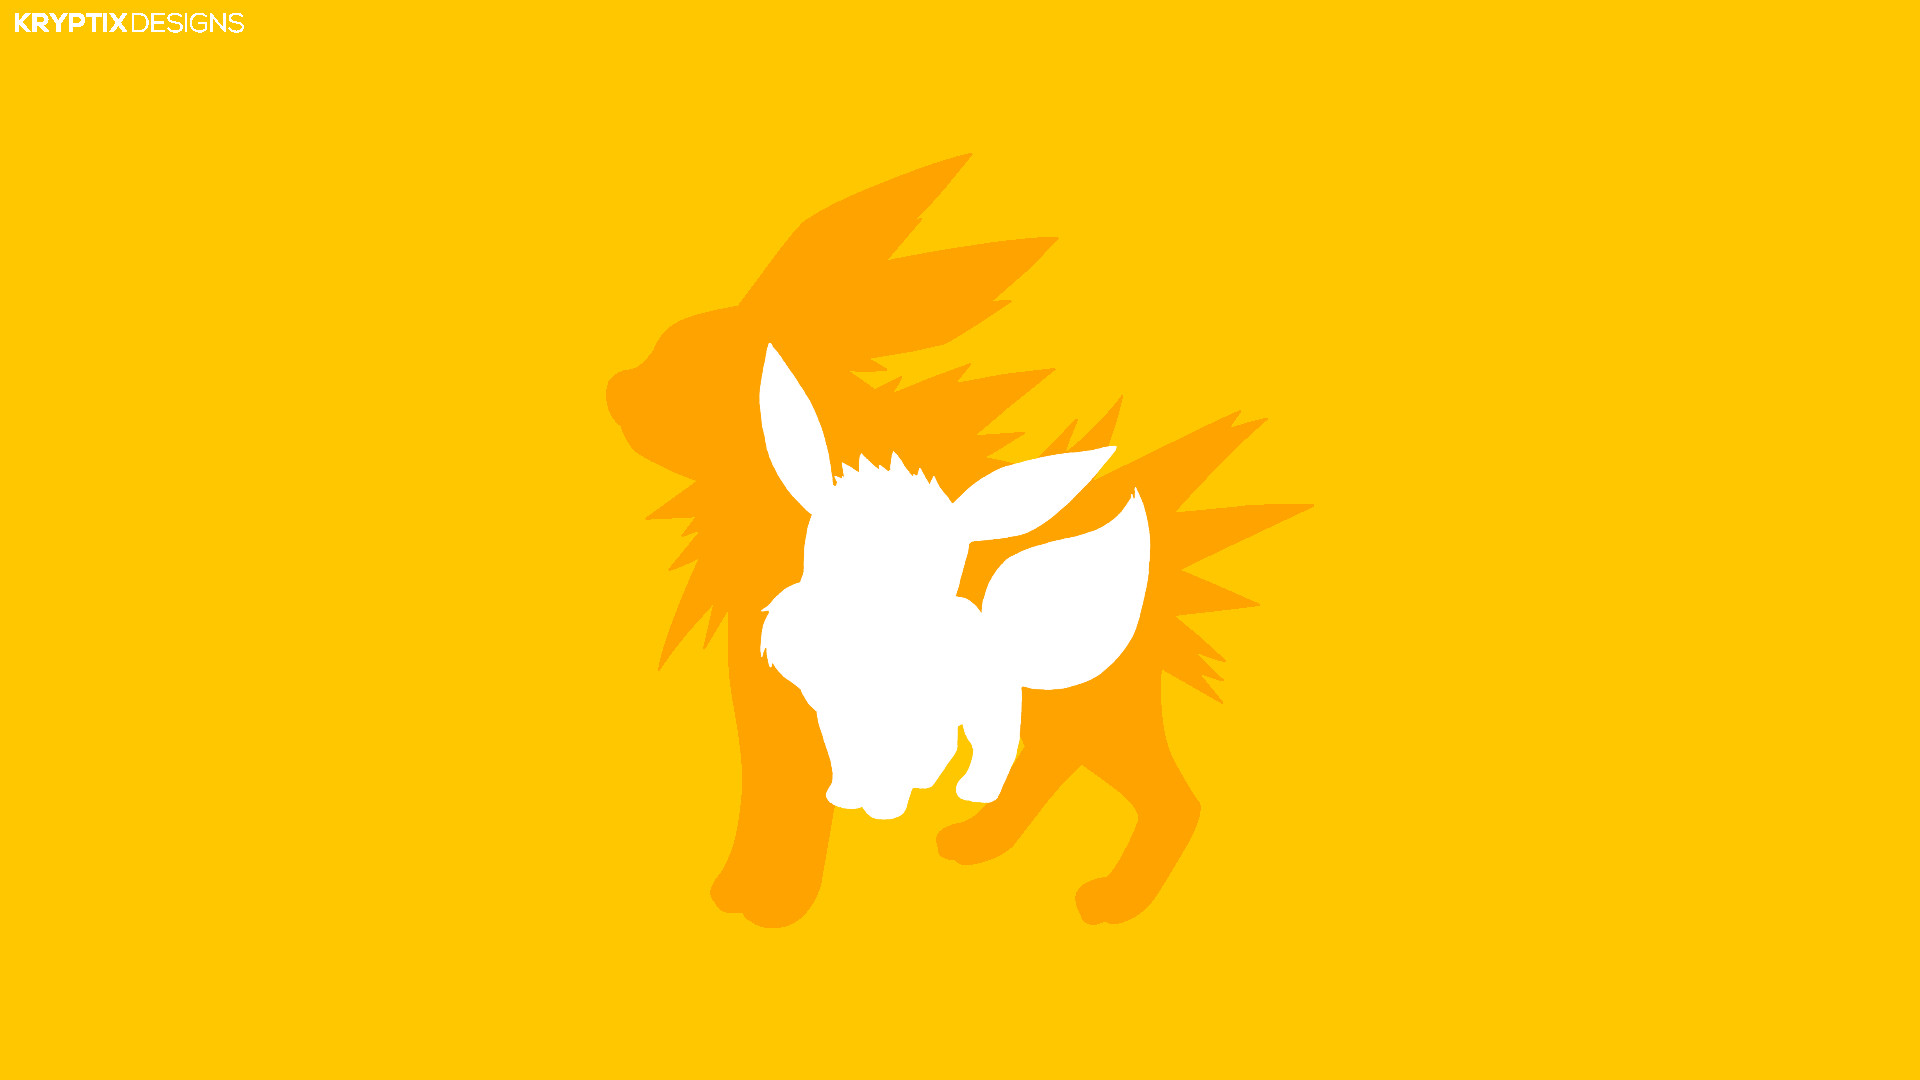 All Eeveelutions Wallpapers HD by KryptixDesigns All Eeveelutions Wallpapers  HD by KryptixDesigns